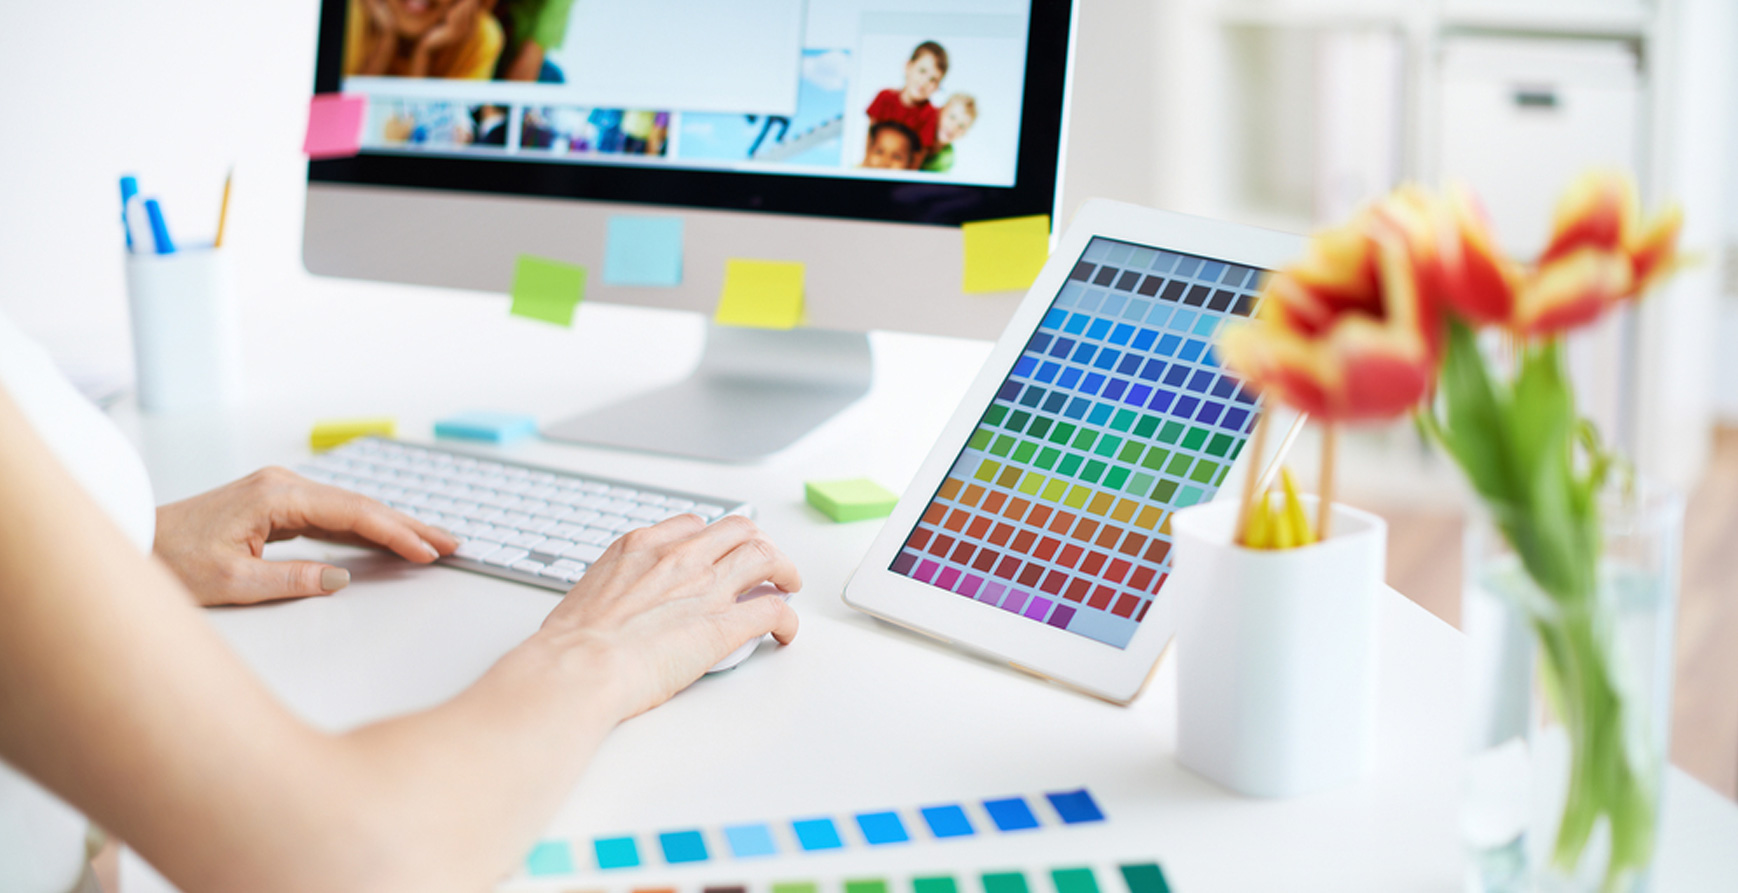 UX Design - How It Benefits Your Brand